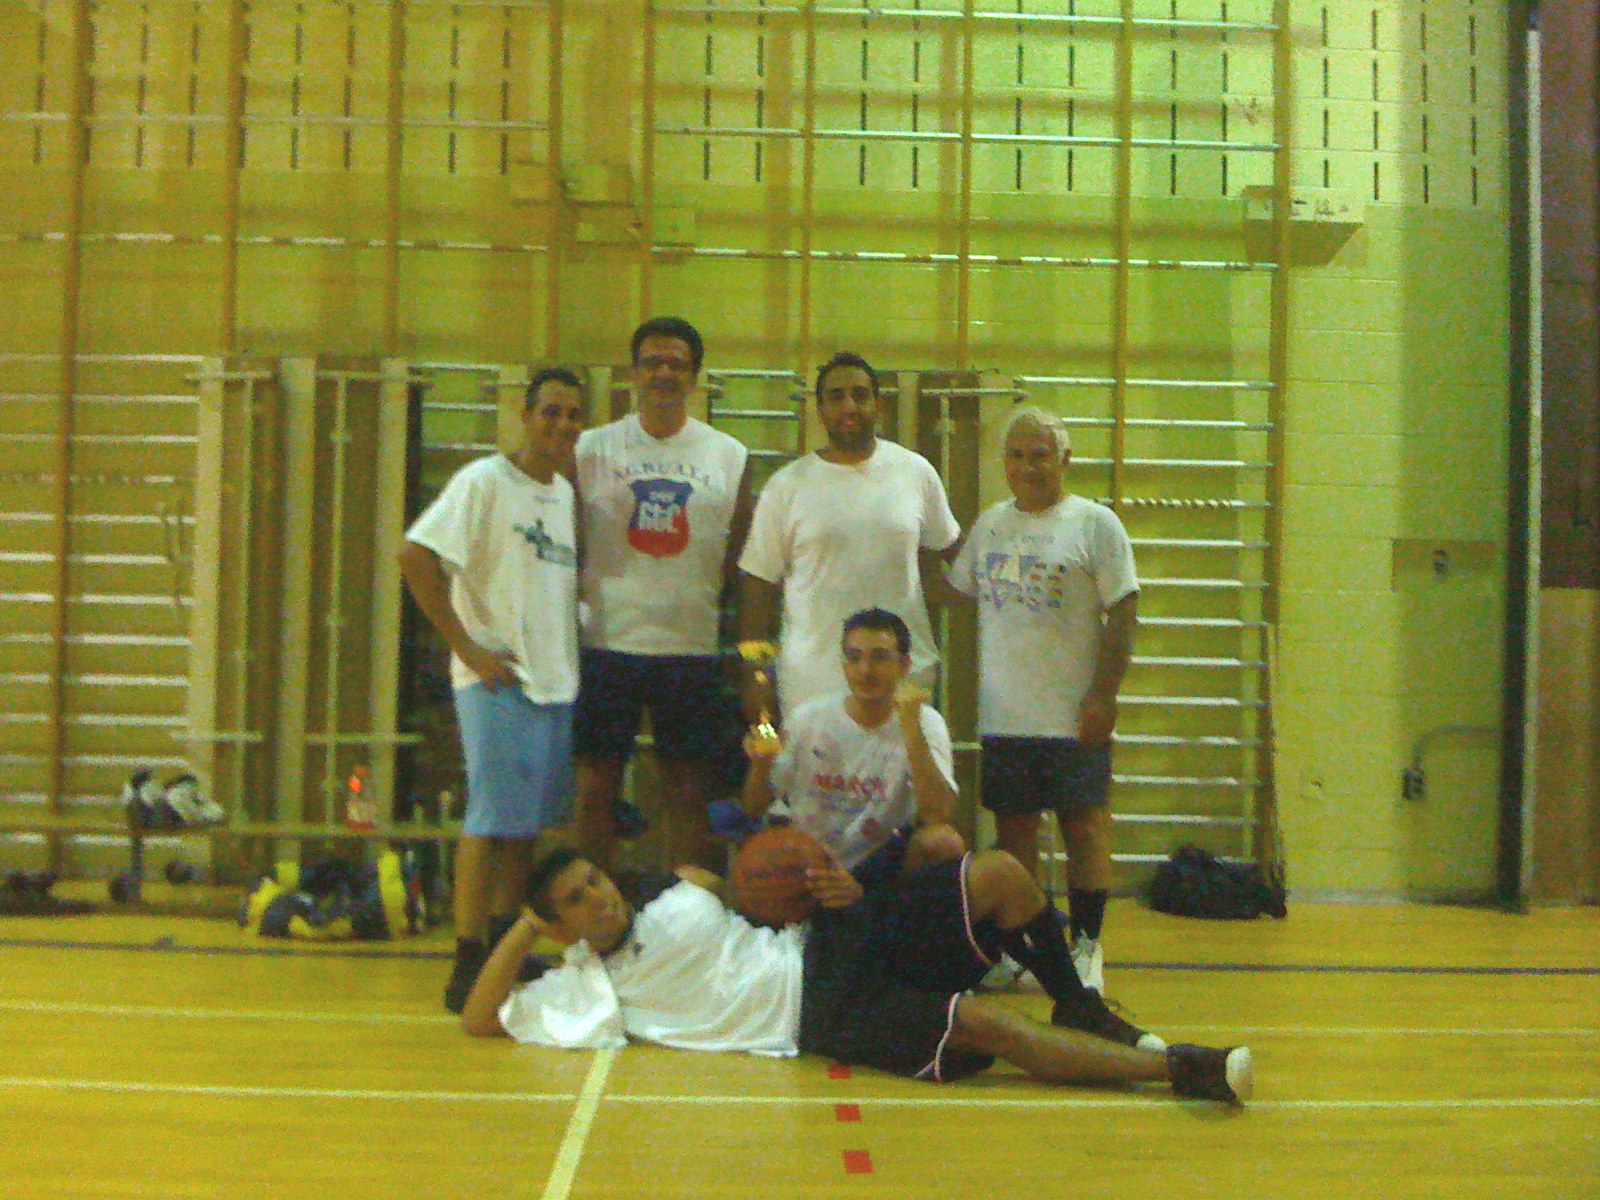 2009 Summer League Champions